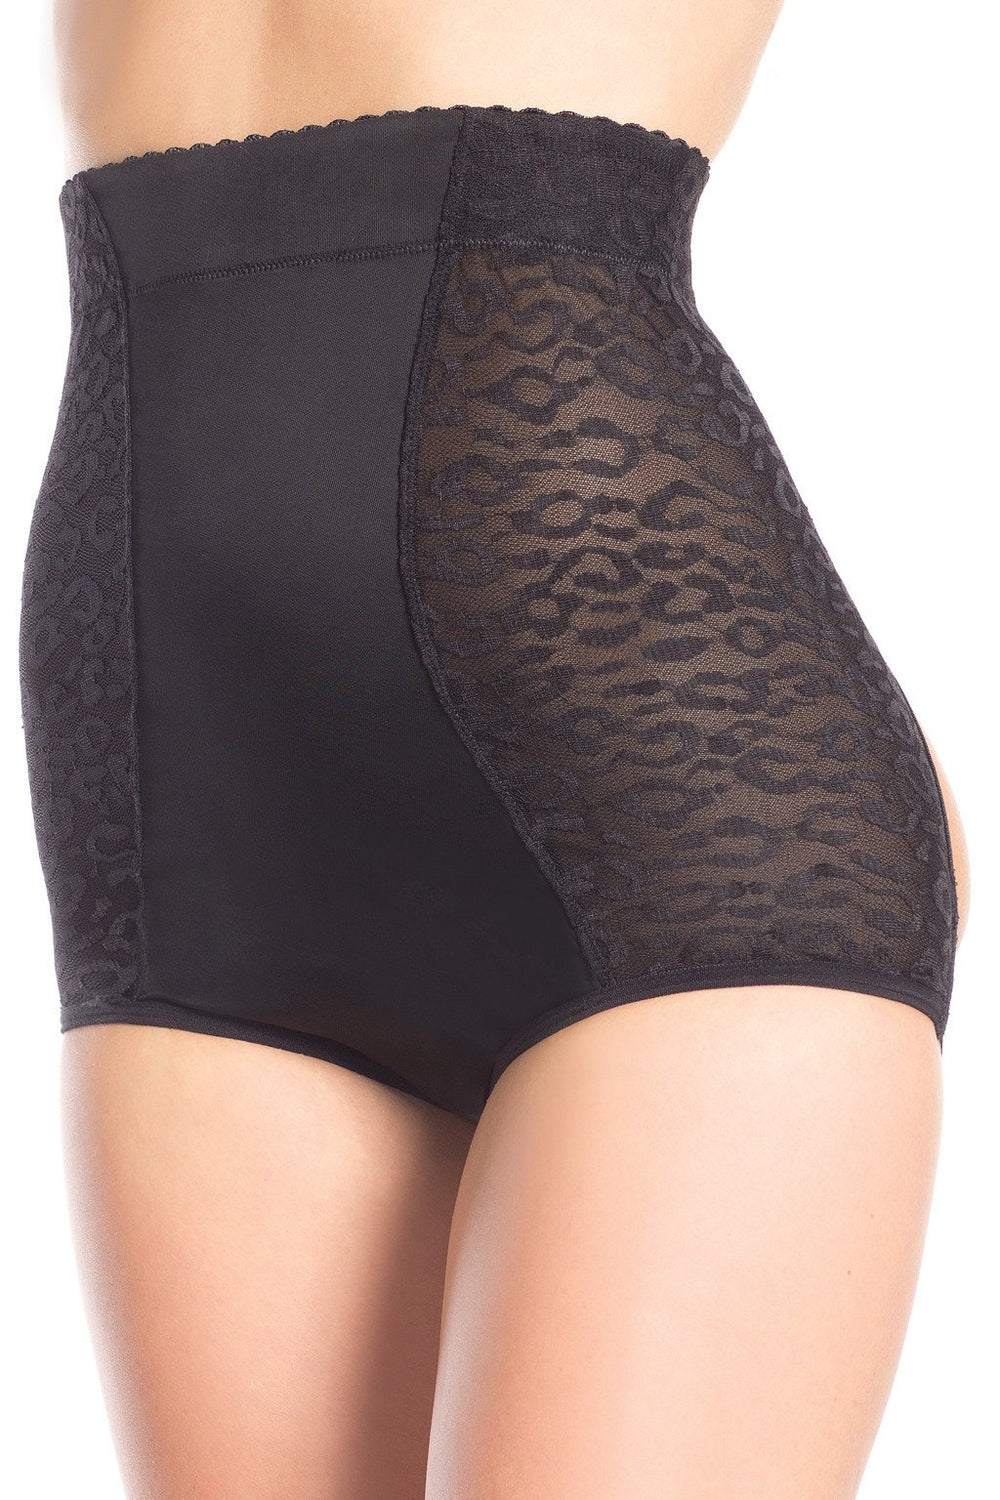 BW1654 High Waist Butt Lifter